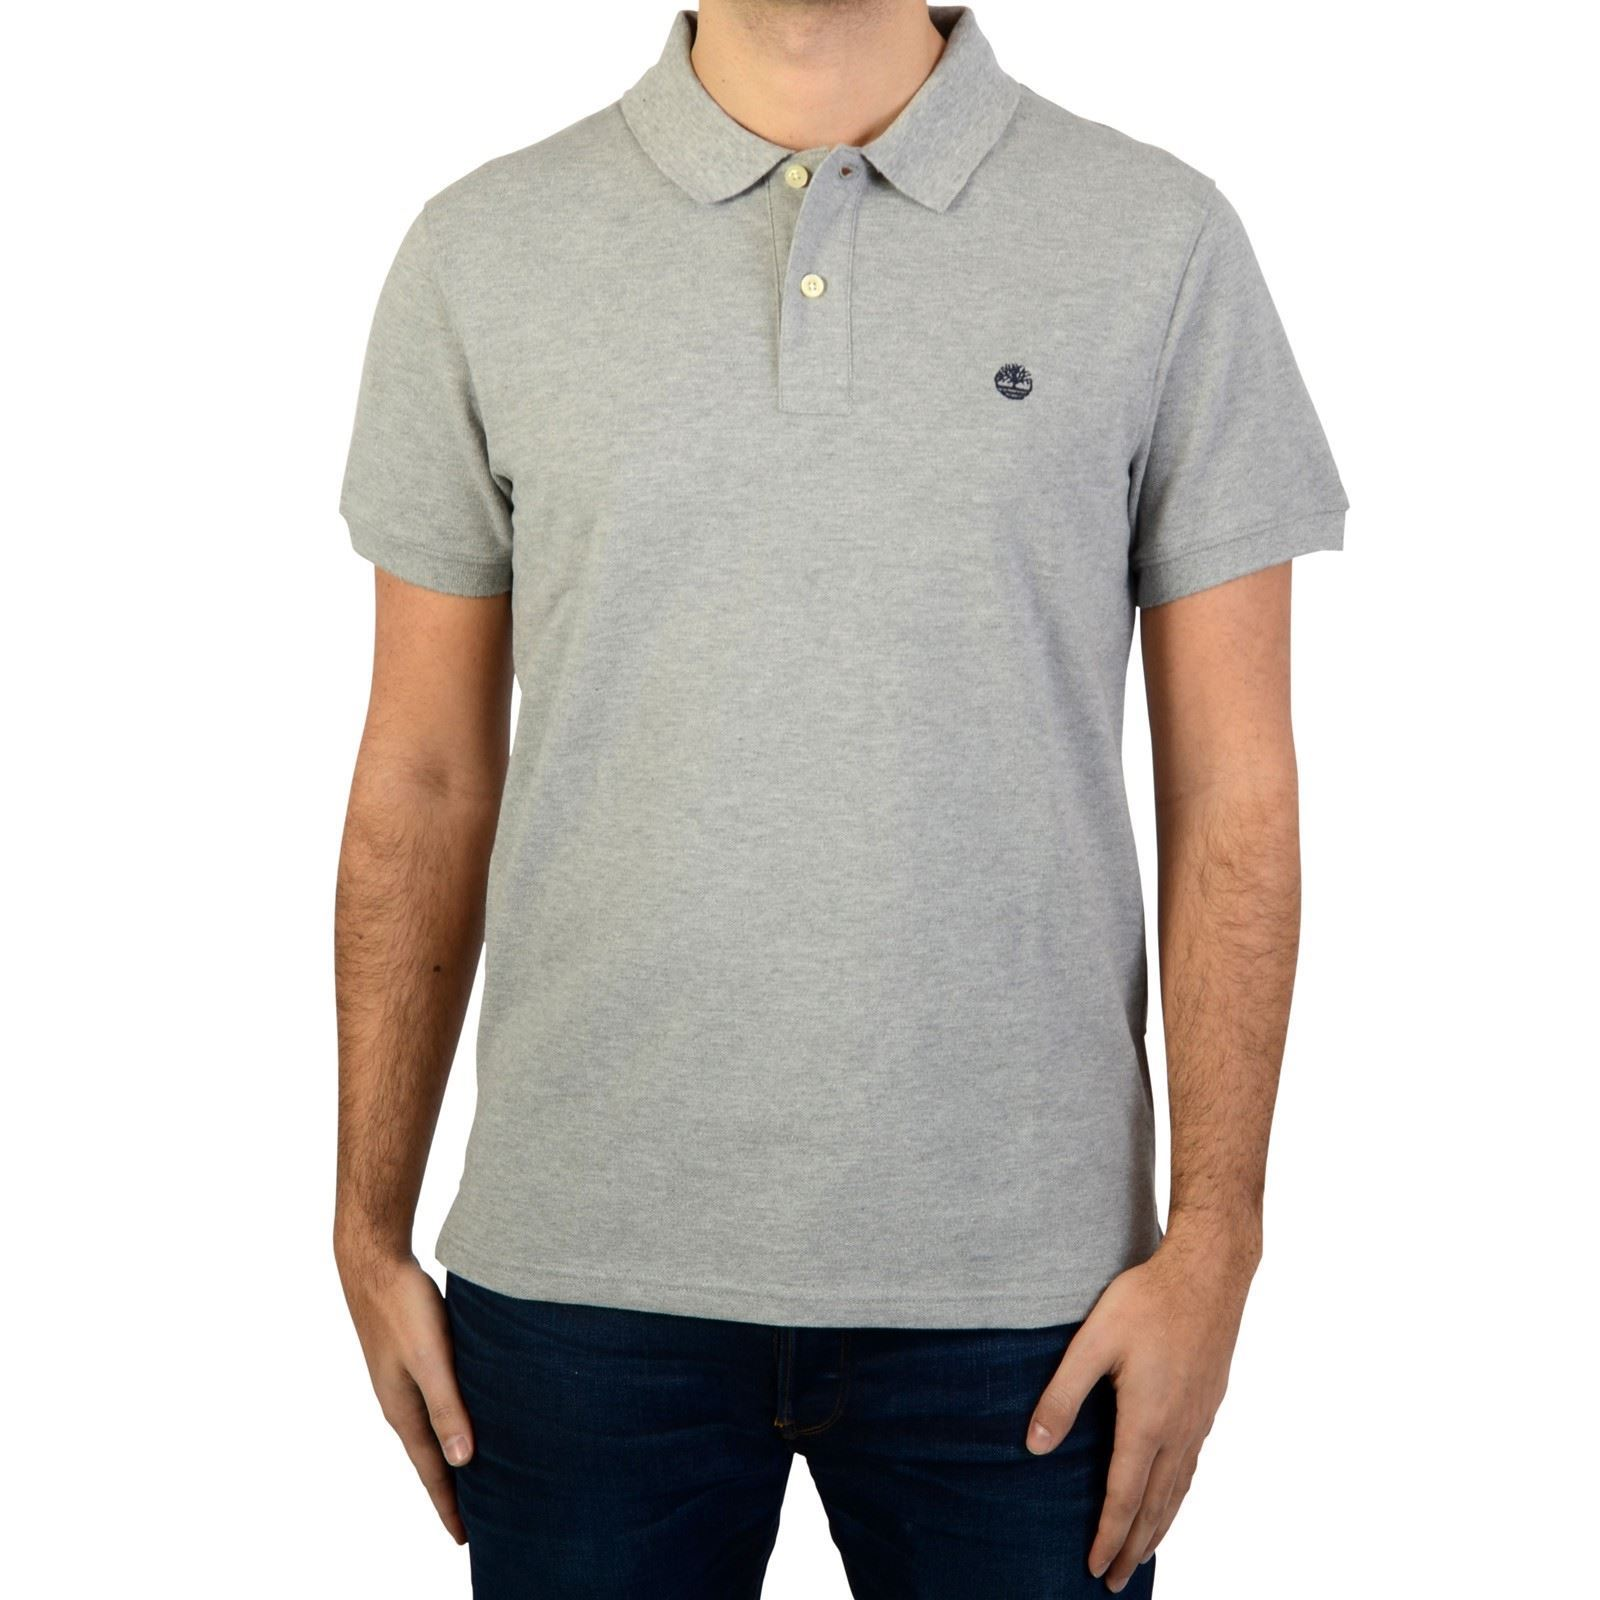 Homme Ss RvrPolo Millers V Timberland Courtes Manches Gris CoxeWdBr